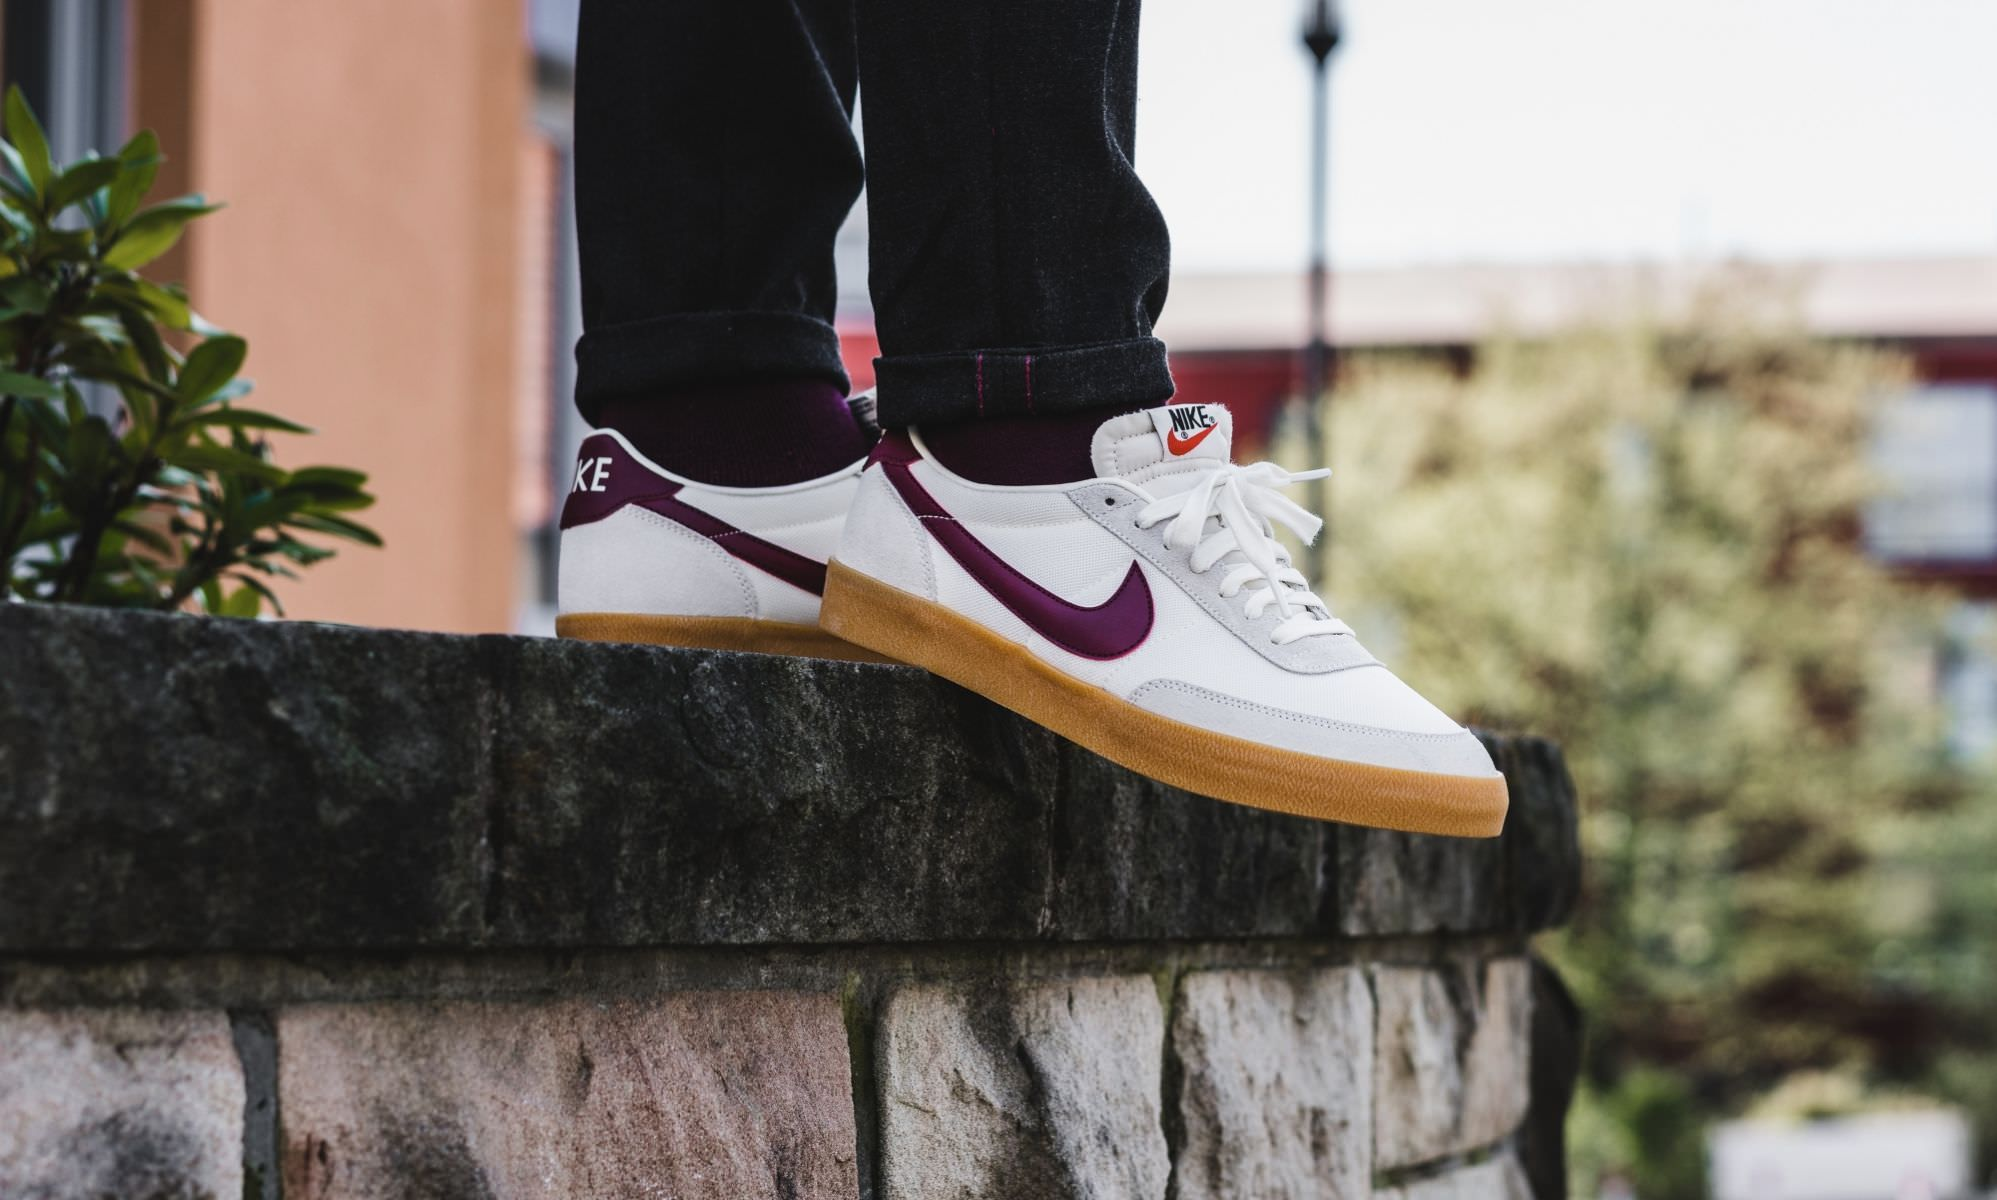 Derechos de autor este plan  Nike Killshot 2 'Sail/Team Red' via malefashionadvice on April 22 2018 at  04:55AM | Nike killshot, Nike, Large men fashion